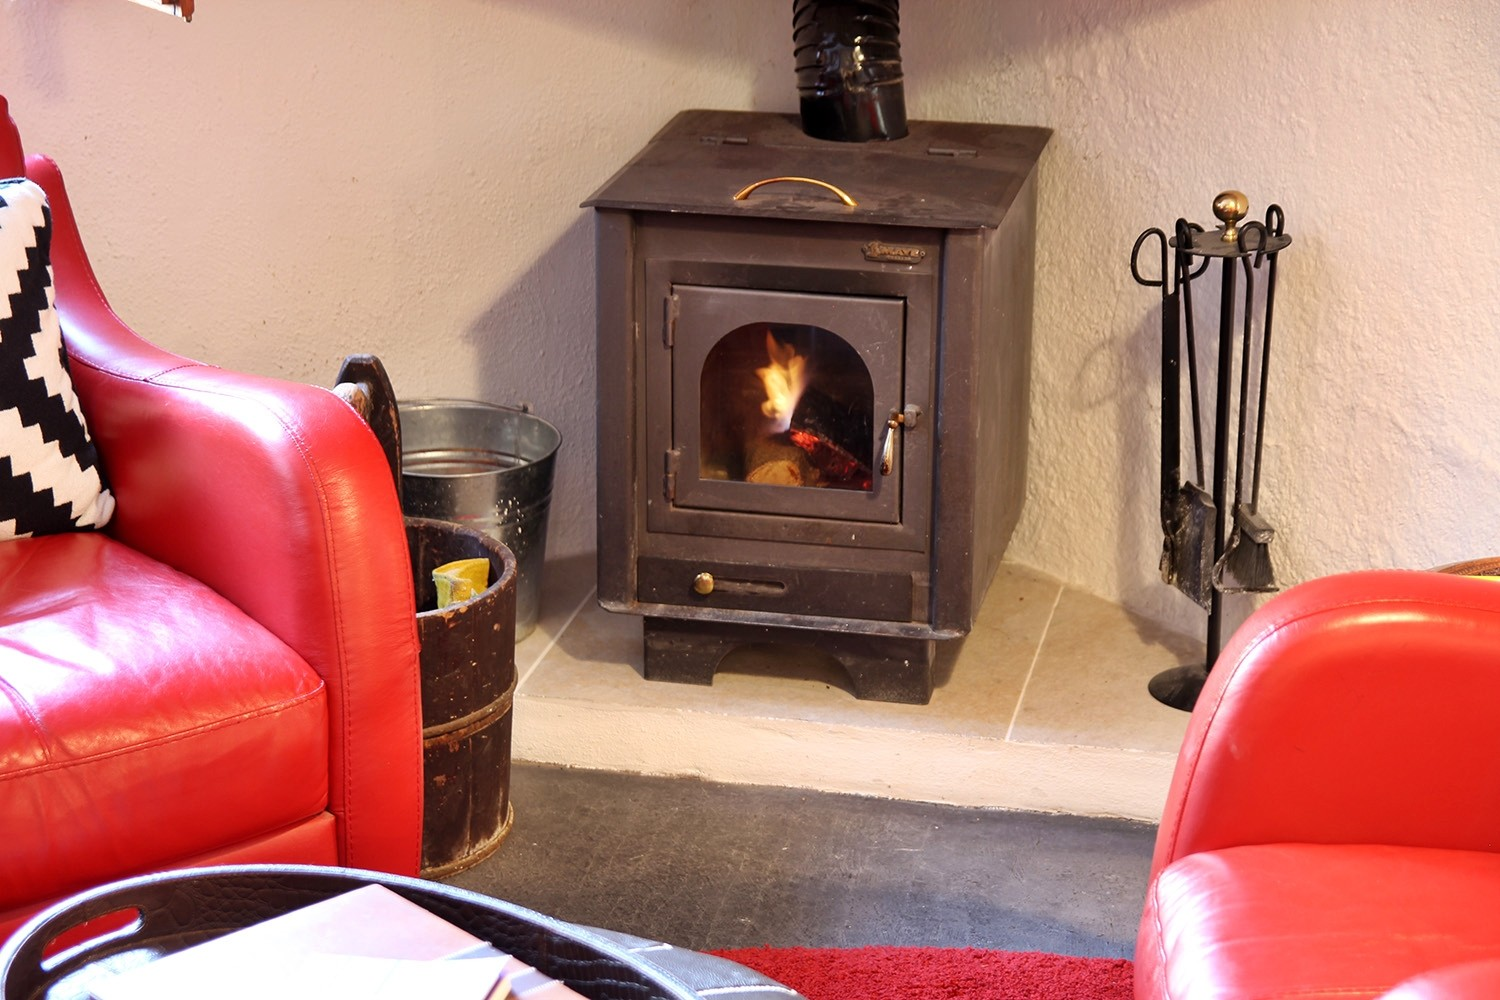 The wood burning stove